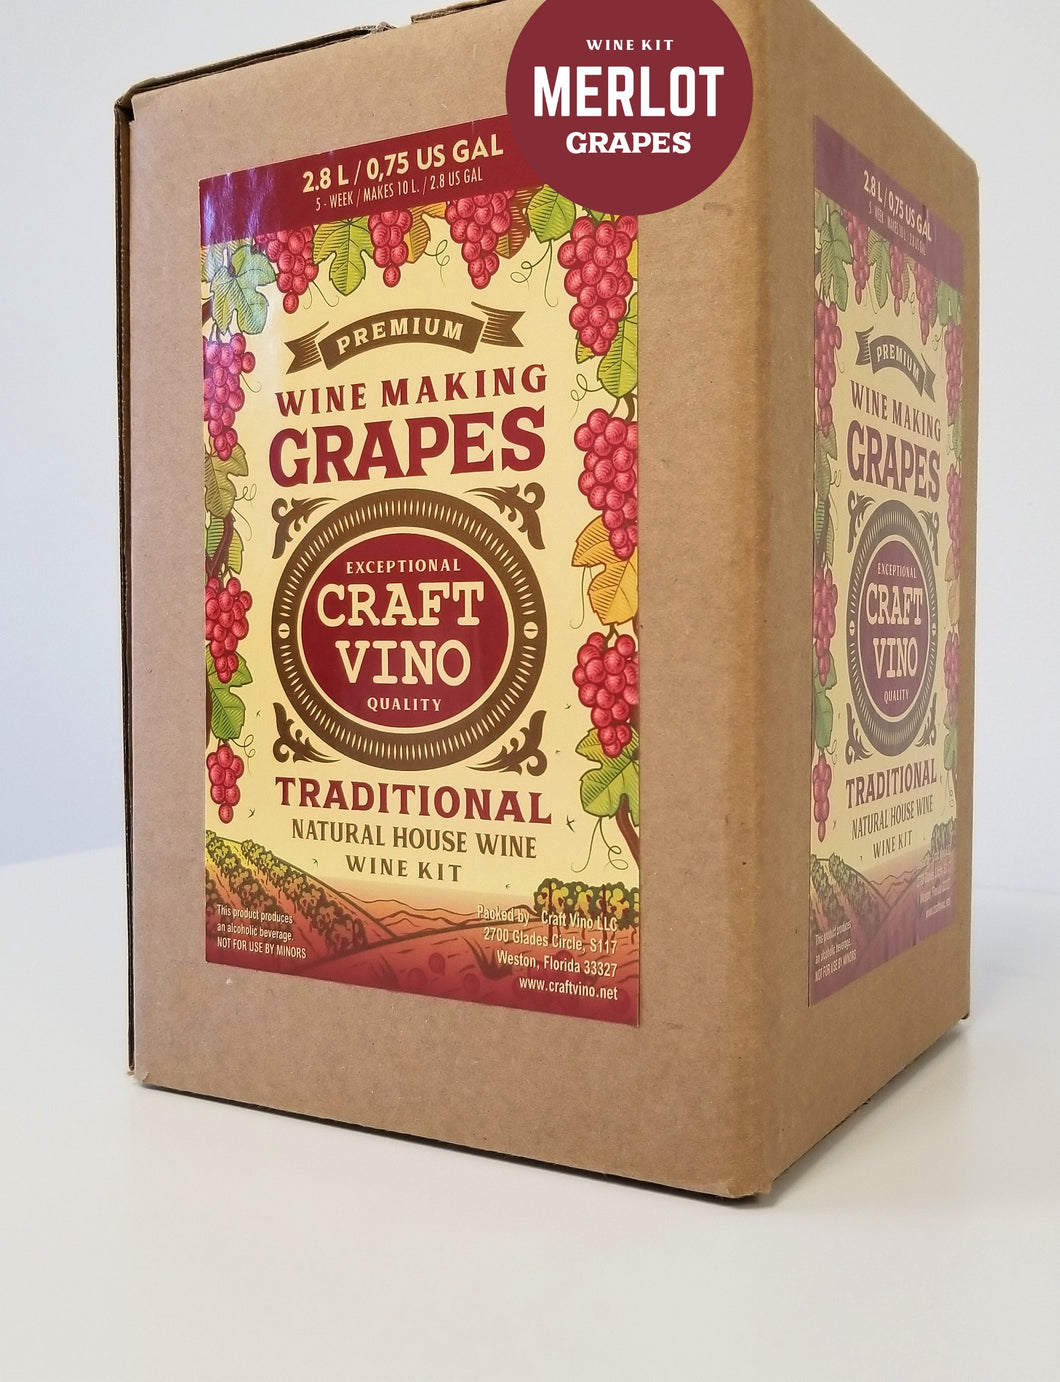 MERLOT GRAPES Premium Wine Kit – Merlot – Makes wine in 4 -5 weeks - CraftVino